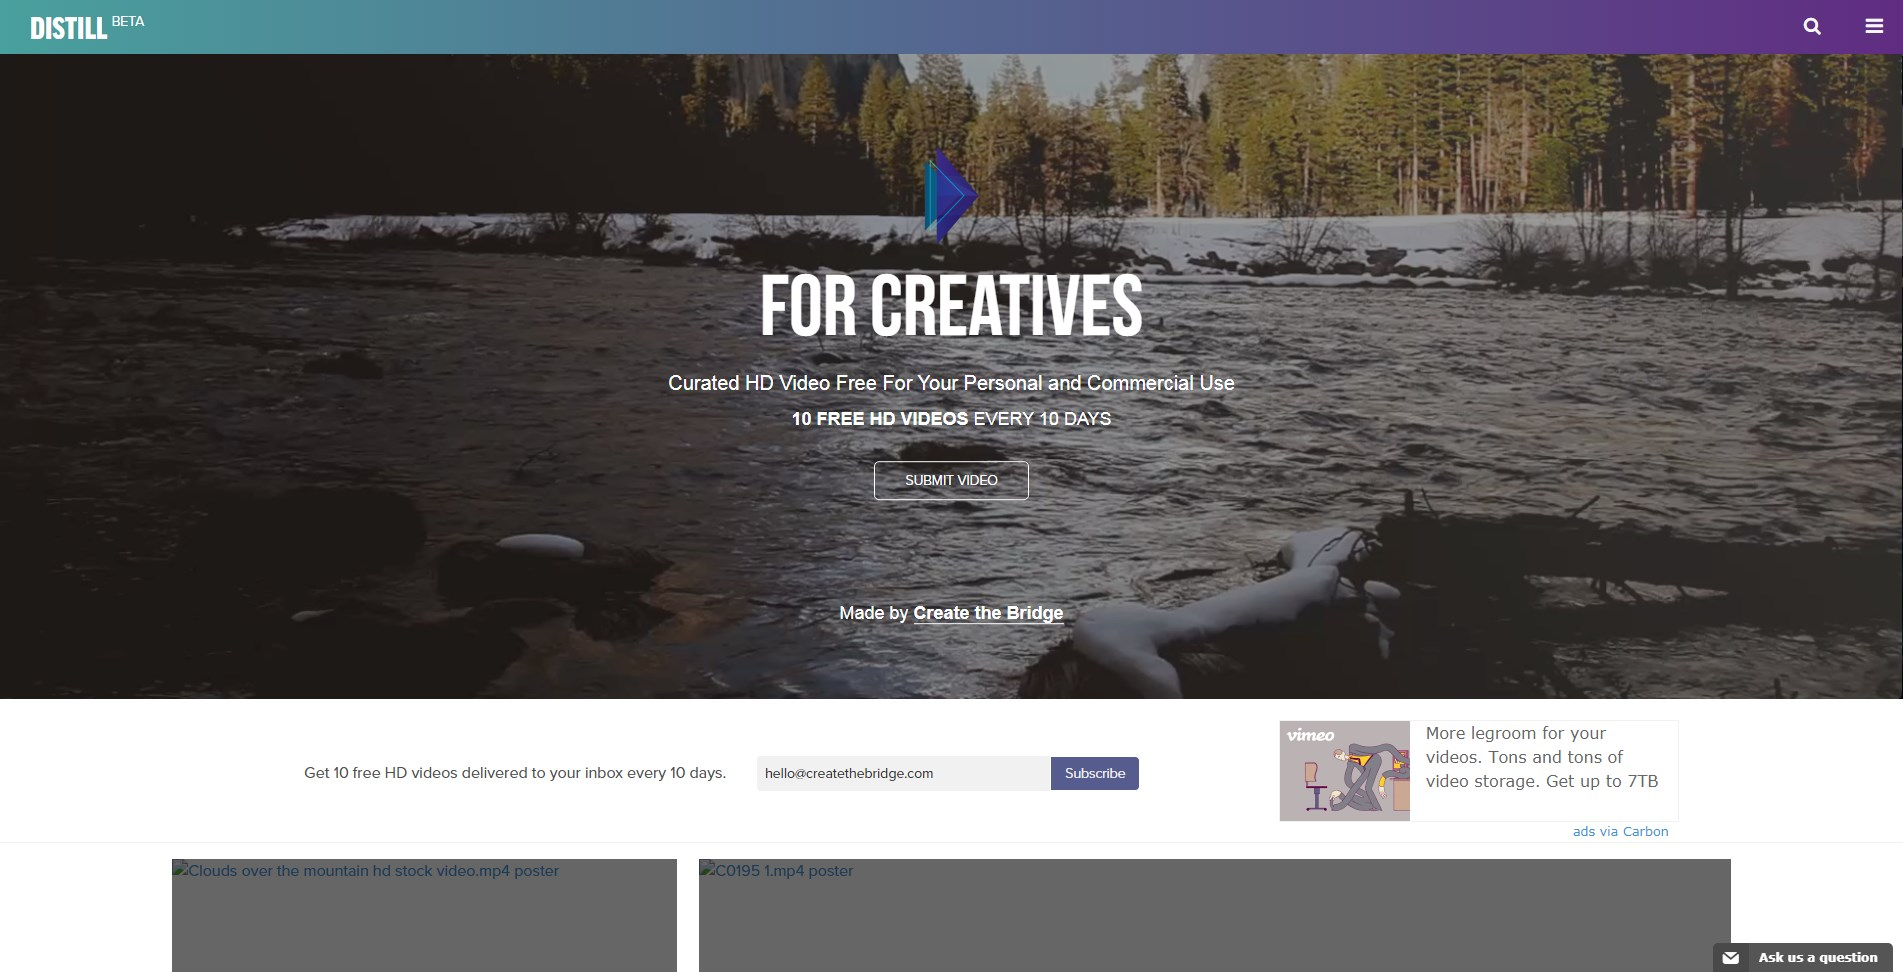 Distill video gratis